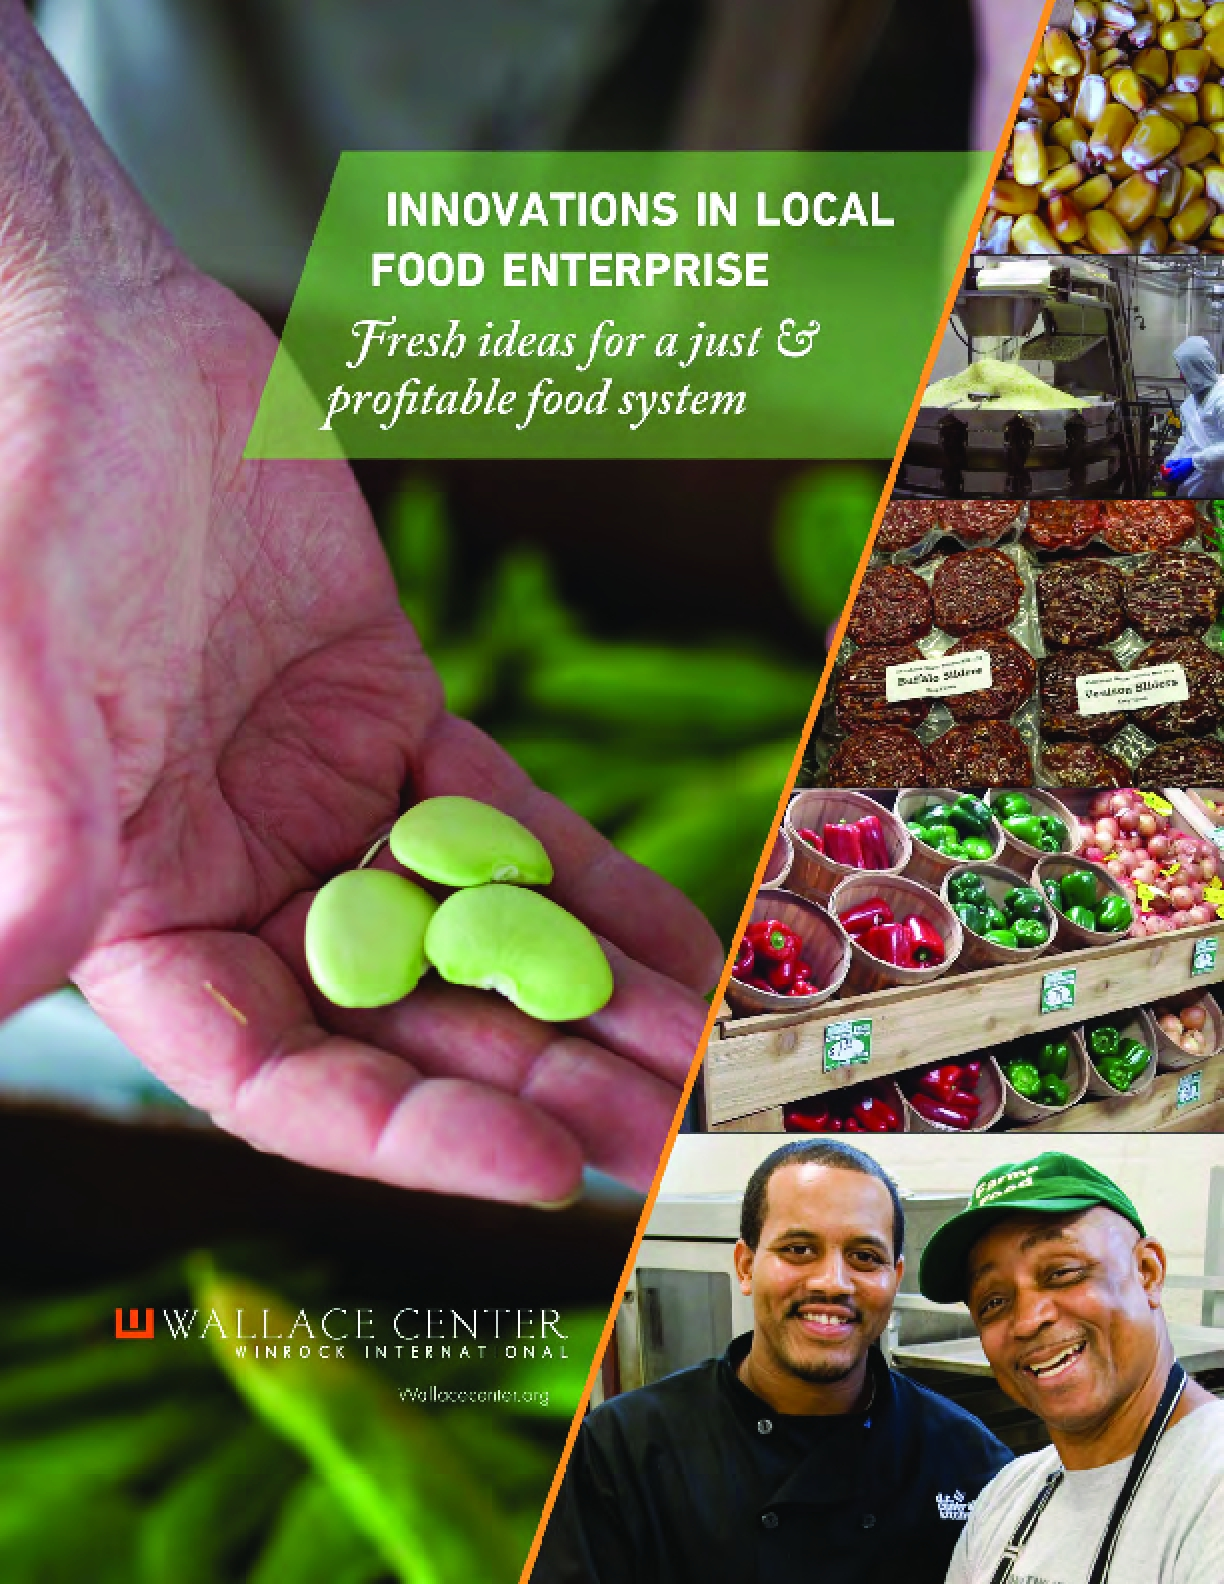 Innovations in Local Food Enterprise: Fresh Ideas for a Just and Profitable Food System